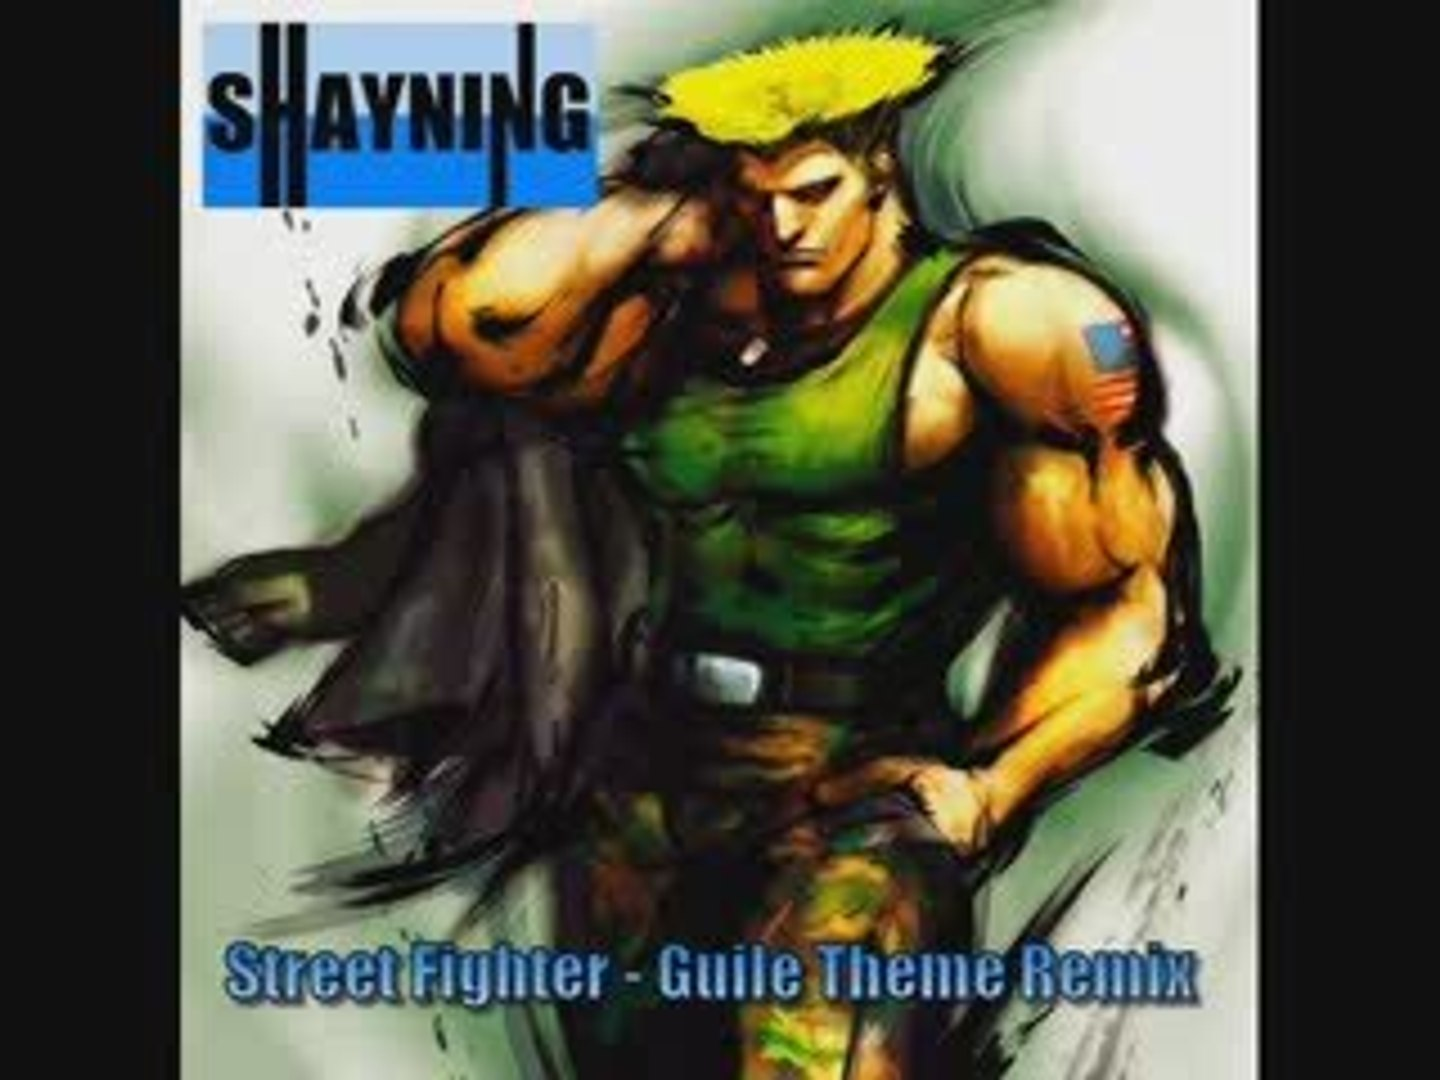 Shayning - Guile Theme Remix - (Street Fighter Music)